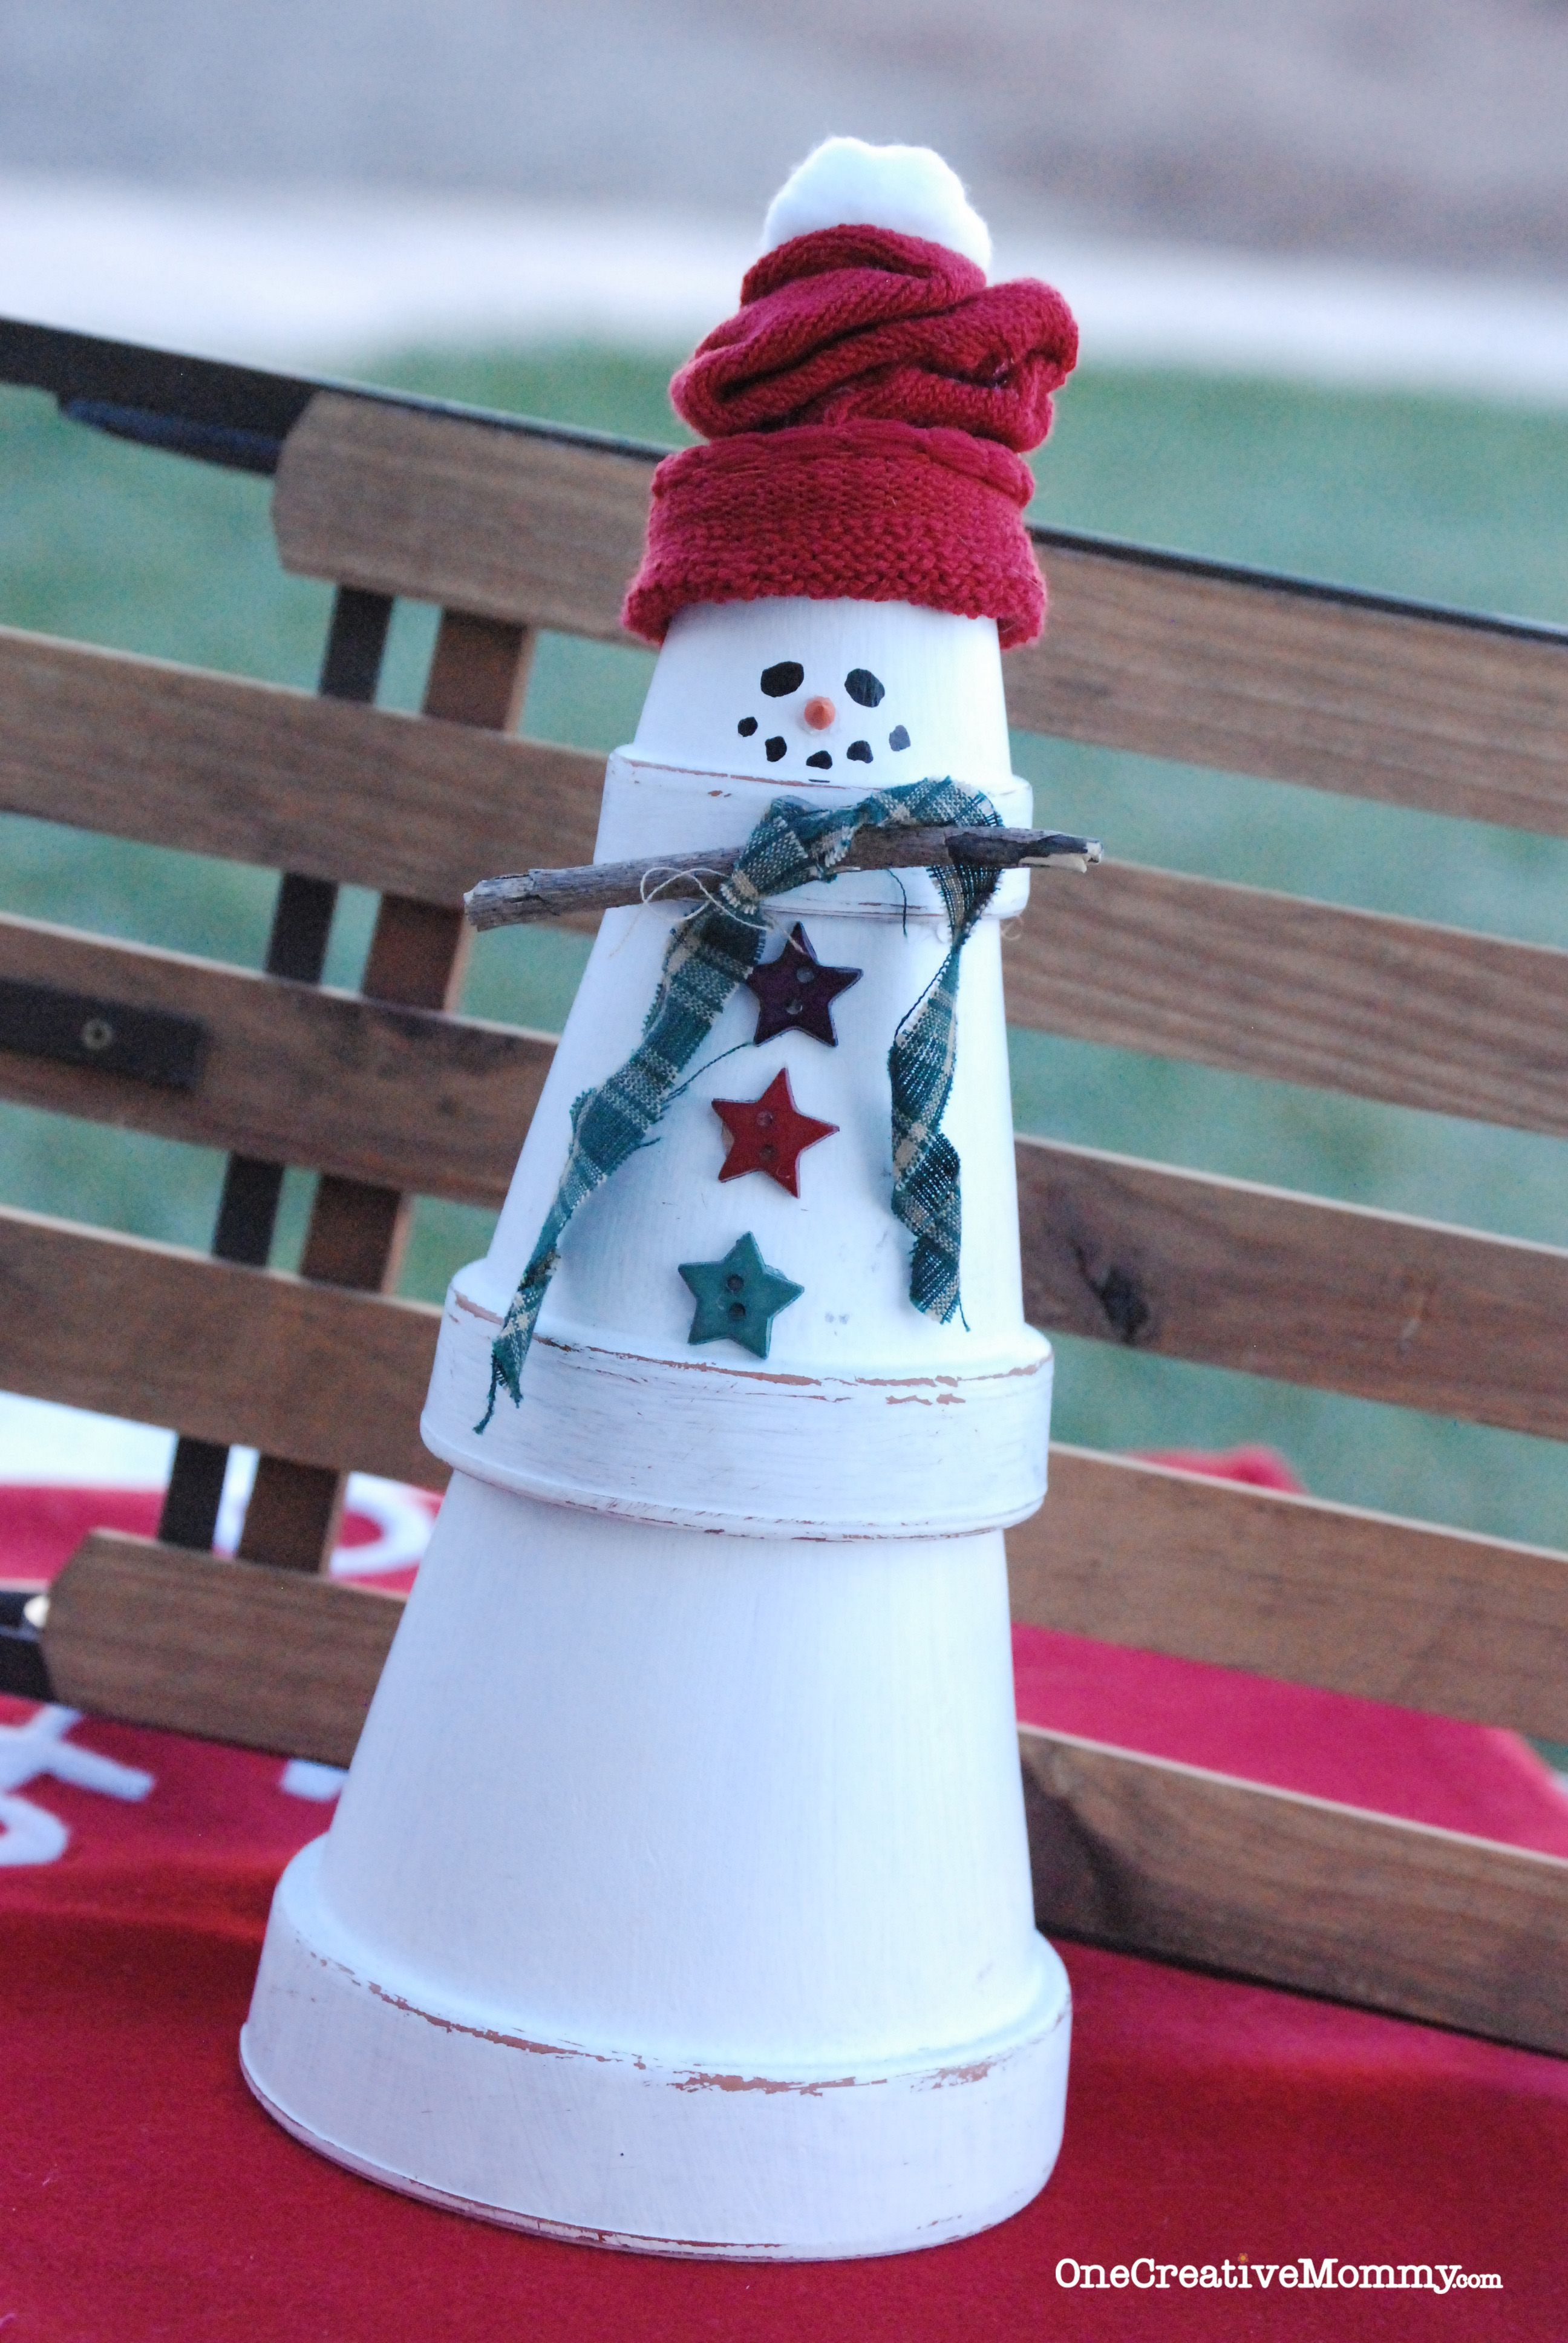 Quick and Easy Terra Cotta Snowman Craft terra cotta pot snowman and Easy Terra Cotta Snowman Craft terra cotta pot snowman | Easy Terra Cotta Snowman Tutorial from --you'll be ...terra cotta pot snowman | Easy Terra Cotta Snowman Tutorial from --you'll be ...